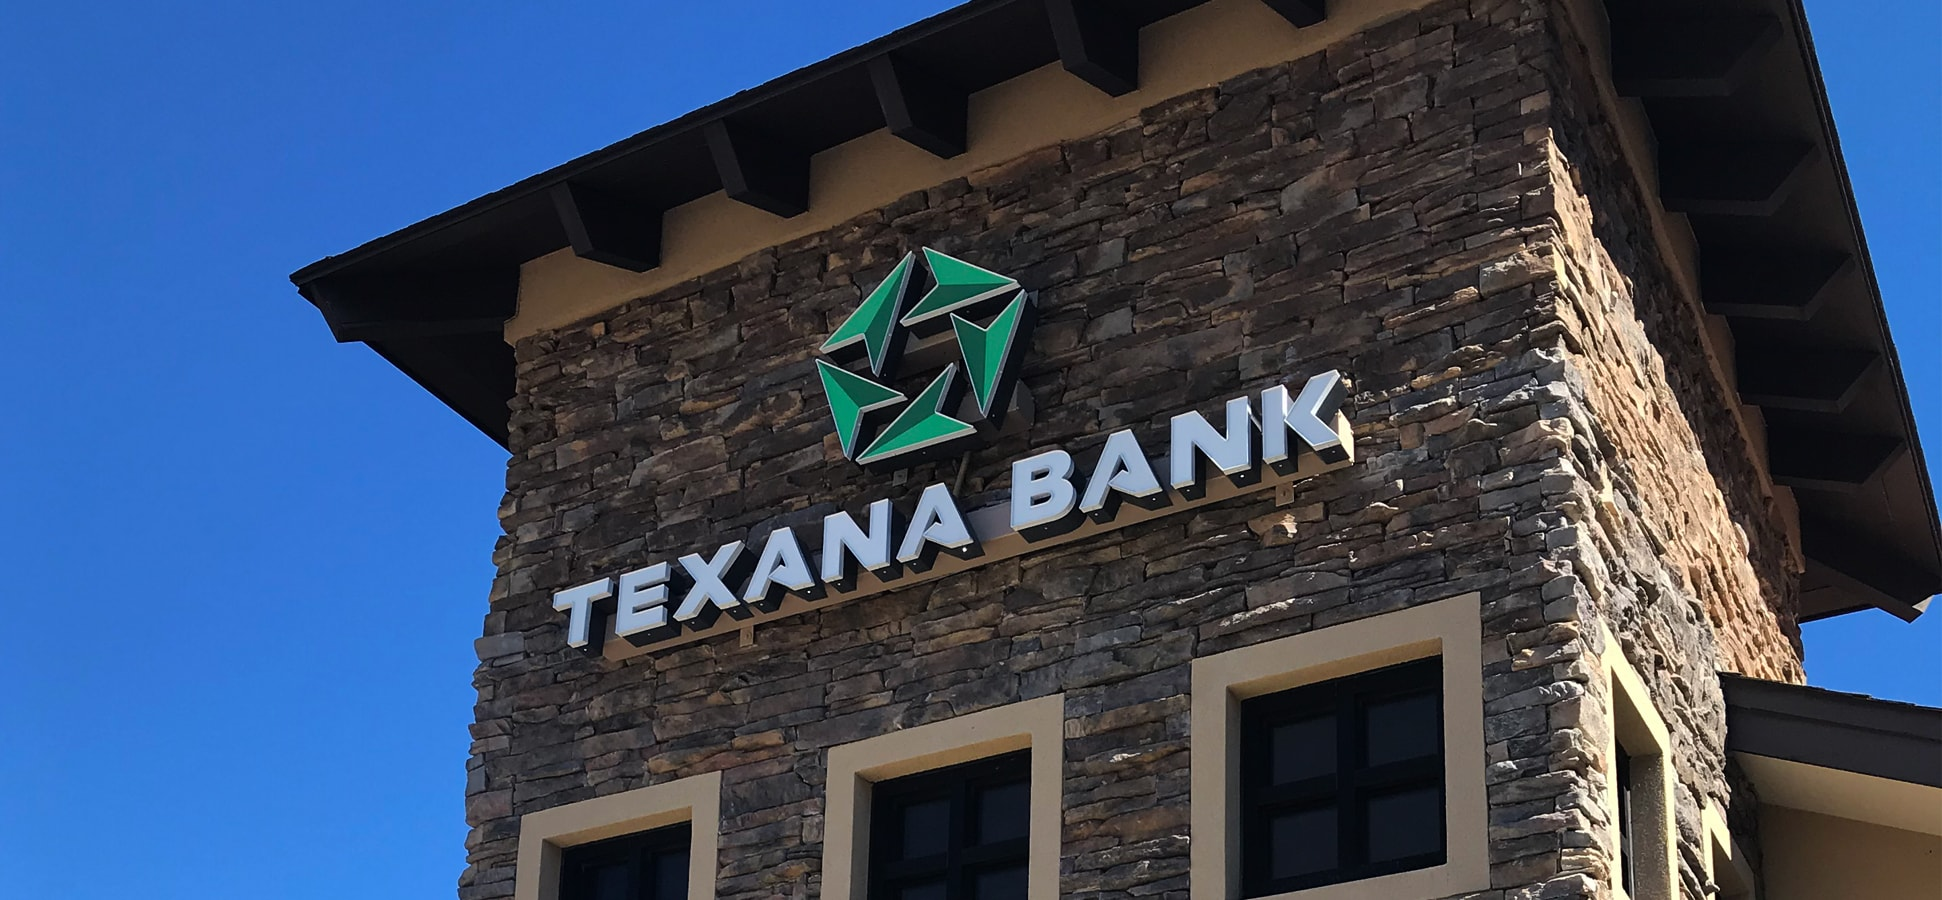 Texana Signage on Building